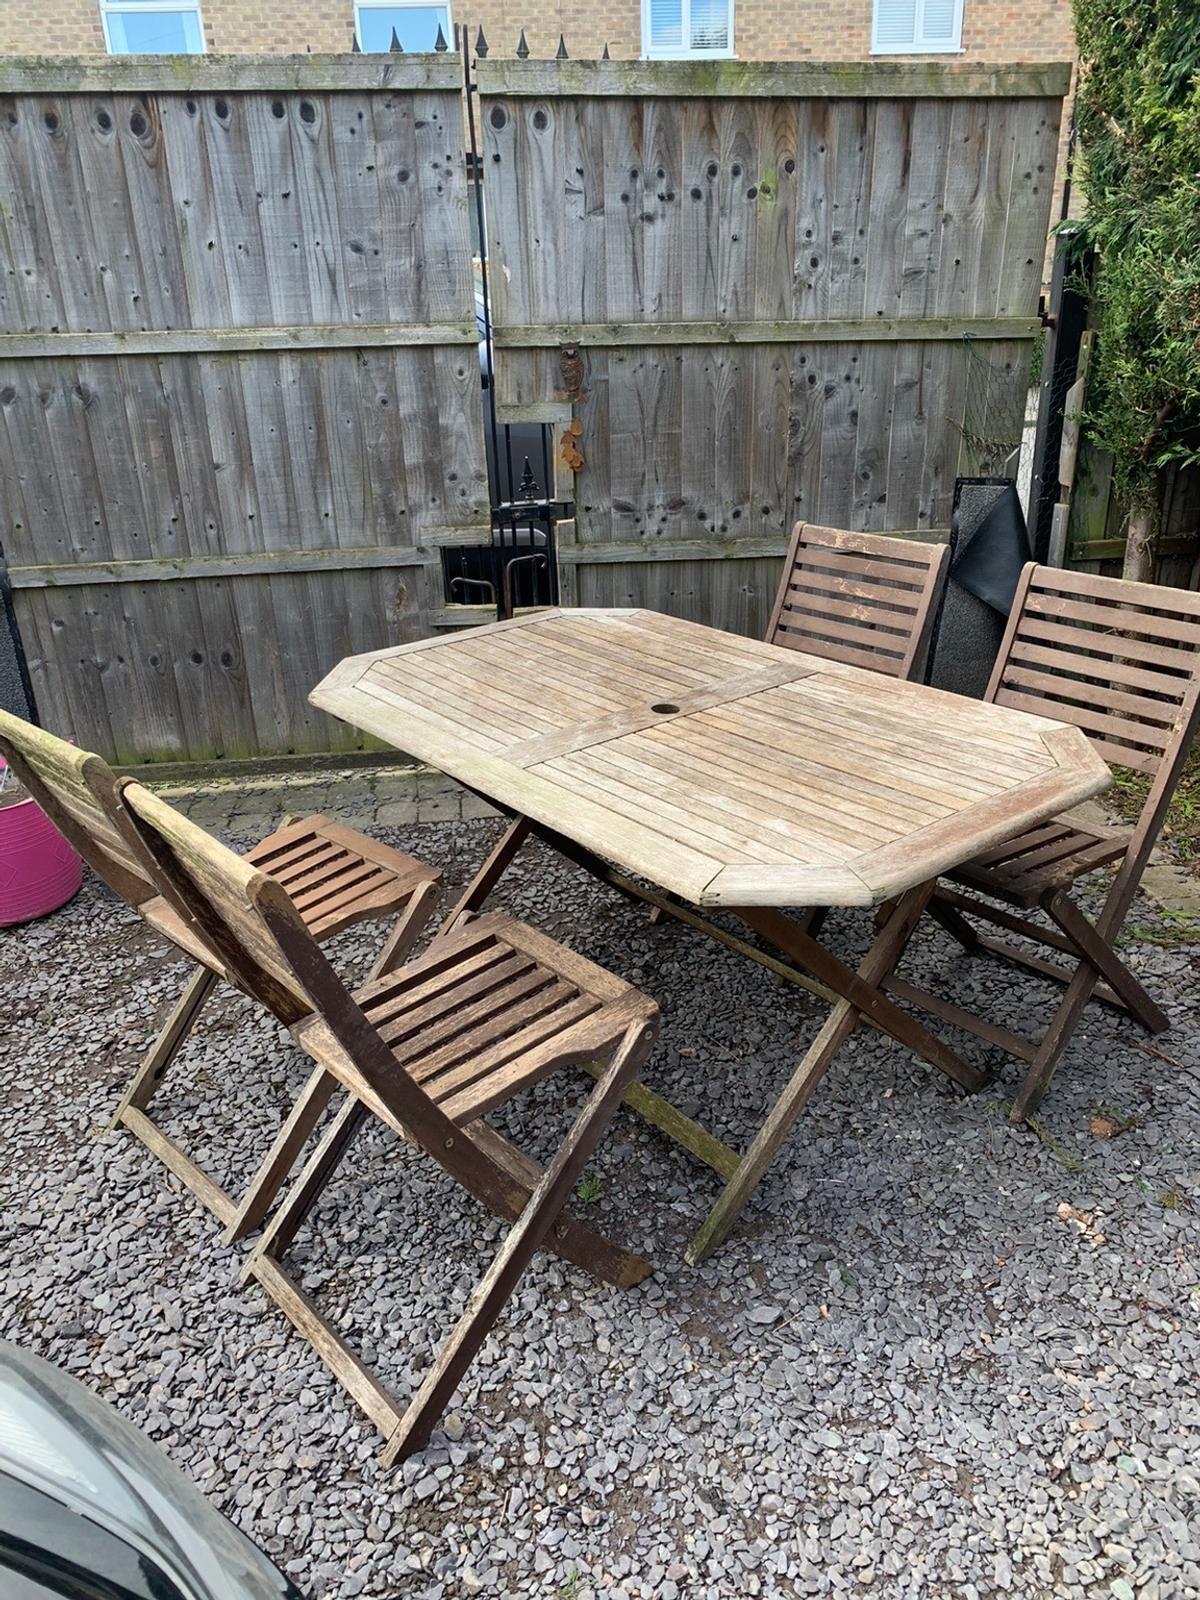 - Wooden Garden Table & Chairs Folding In NG11 Rushcliffe Für £ 25